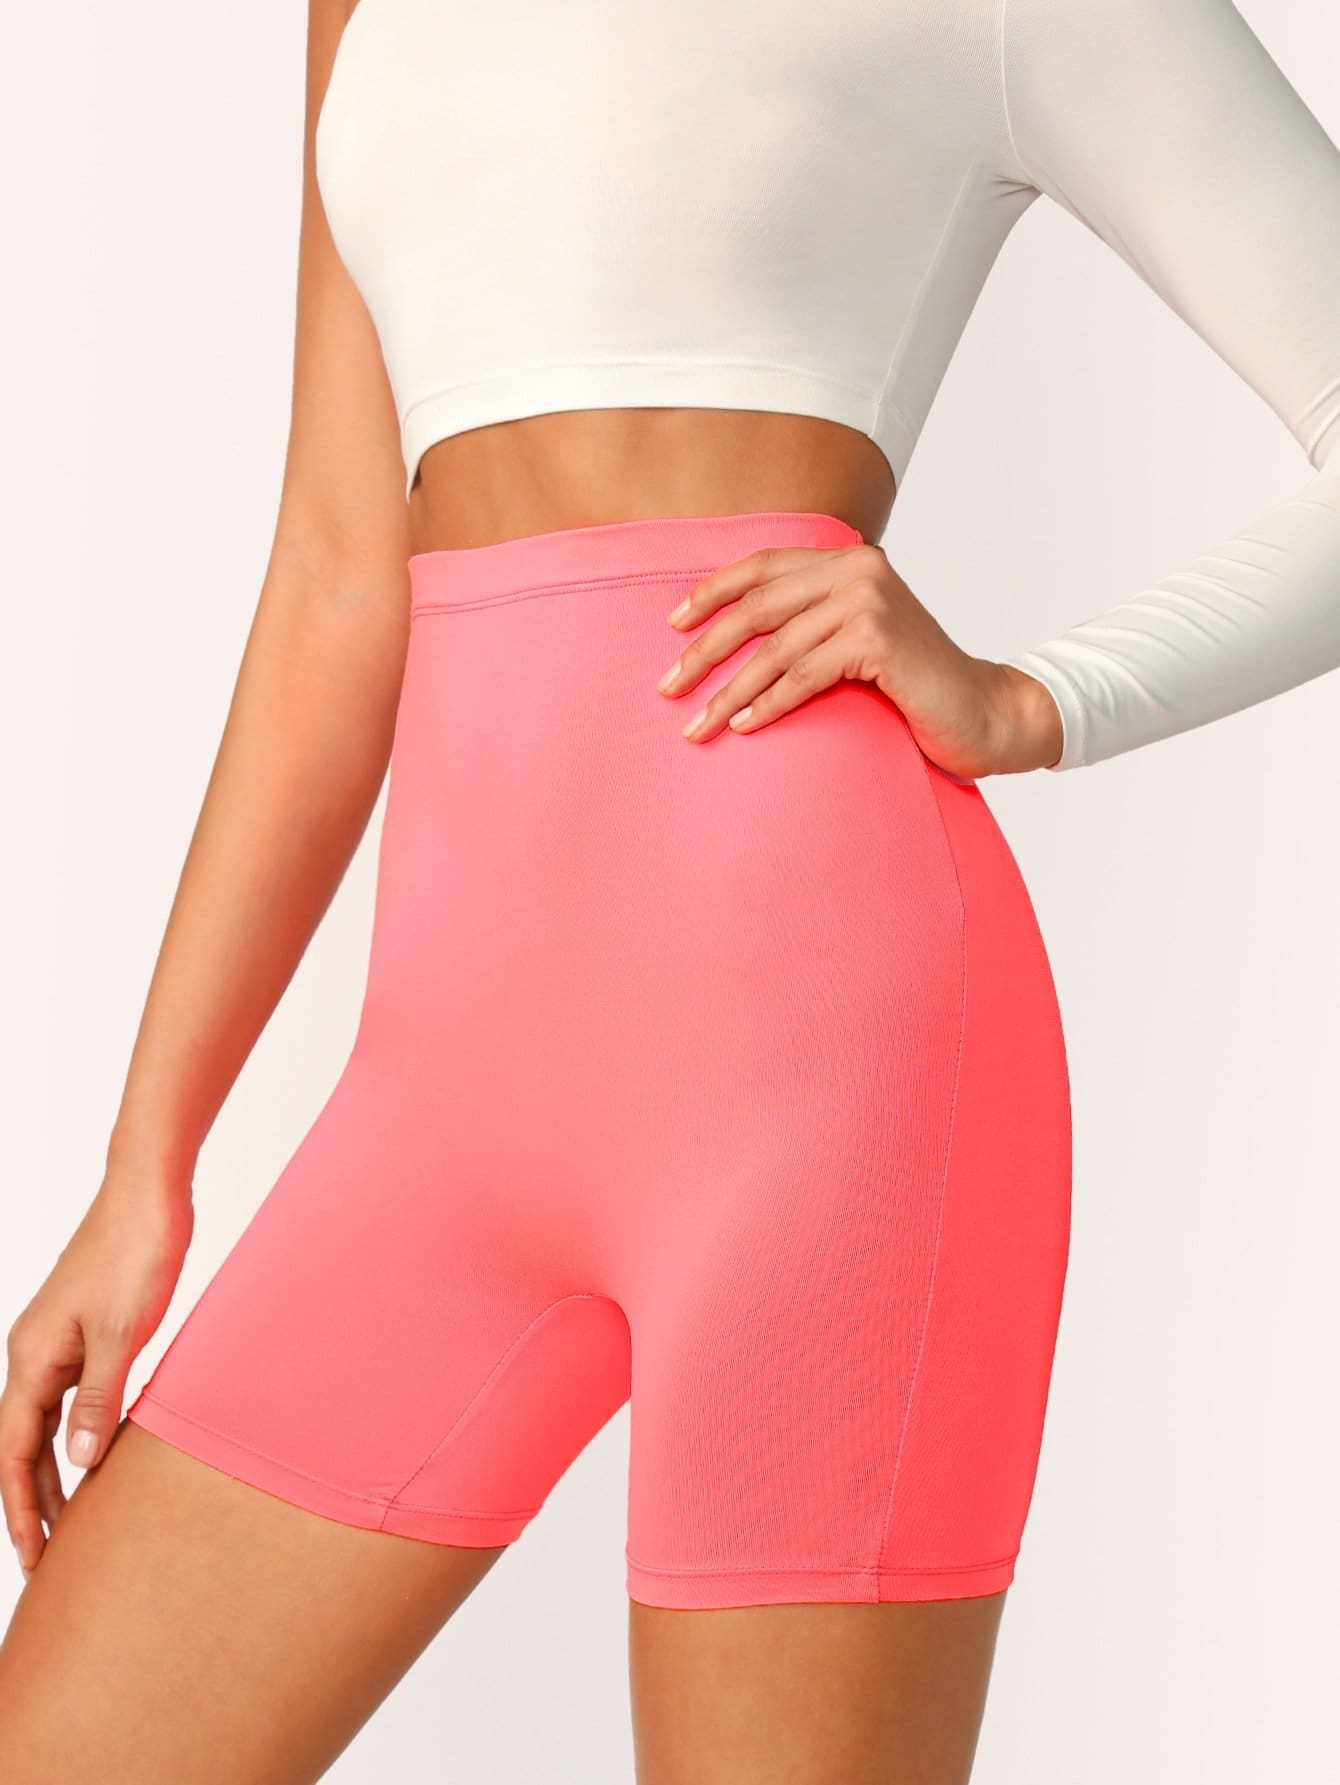 Neon Pink High Waist Cycling Shorts - Fittness Leggings